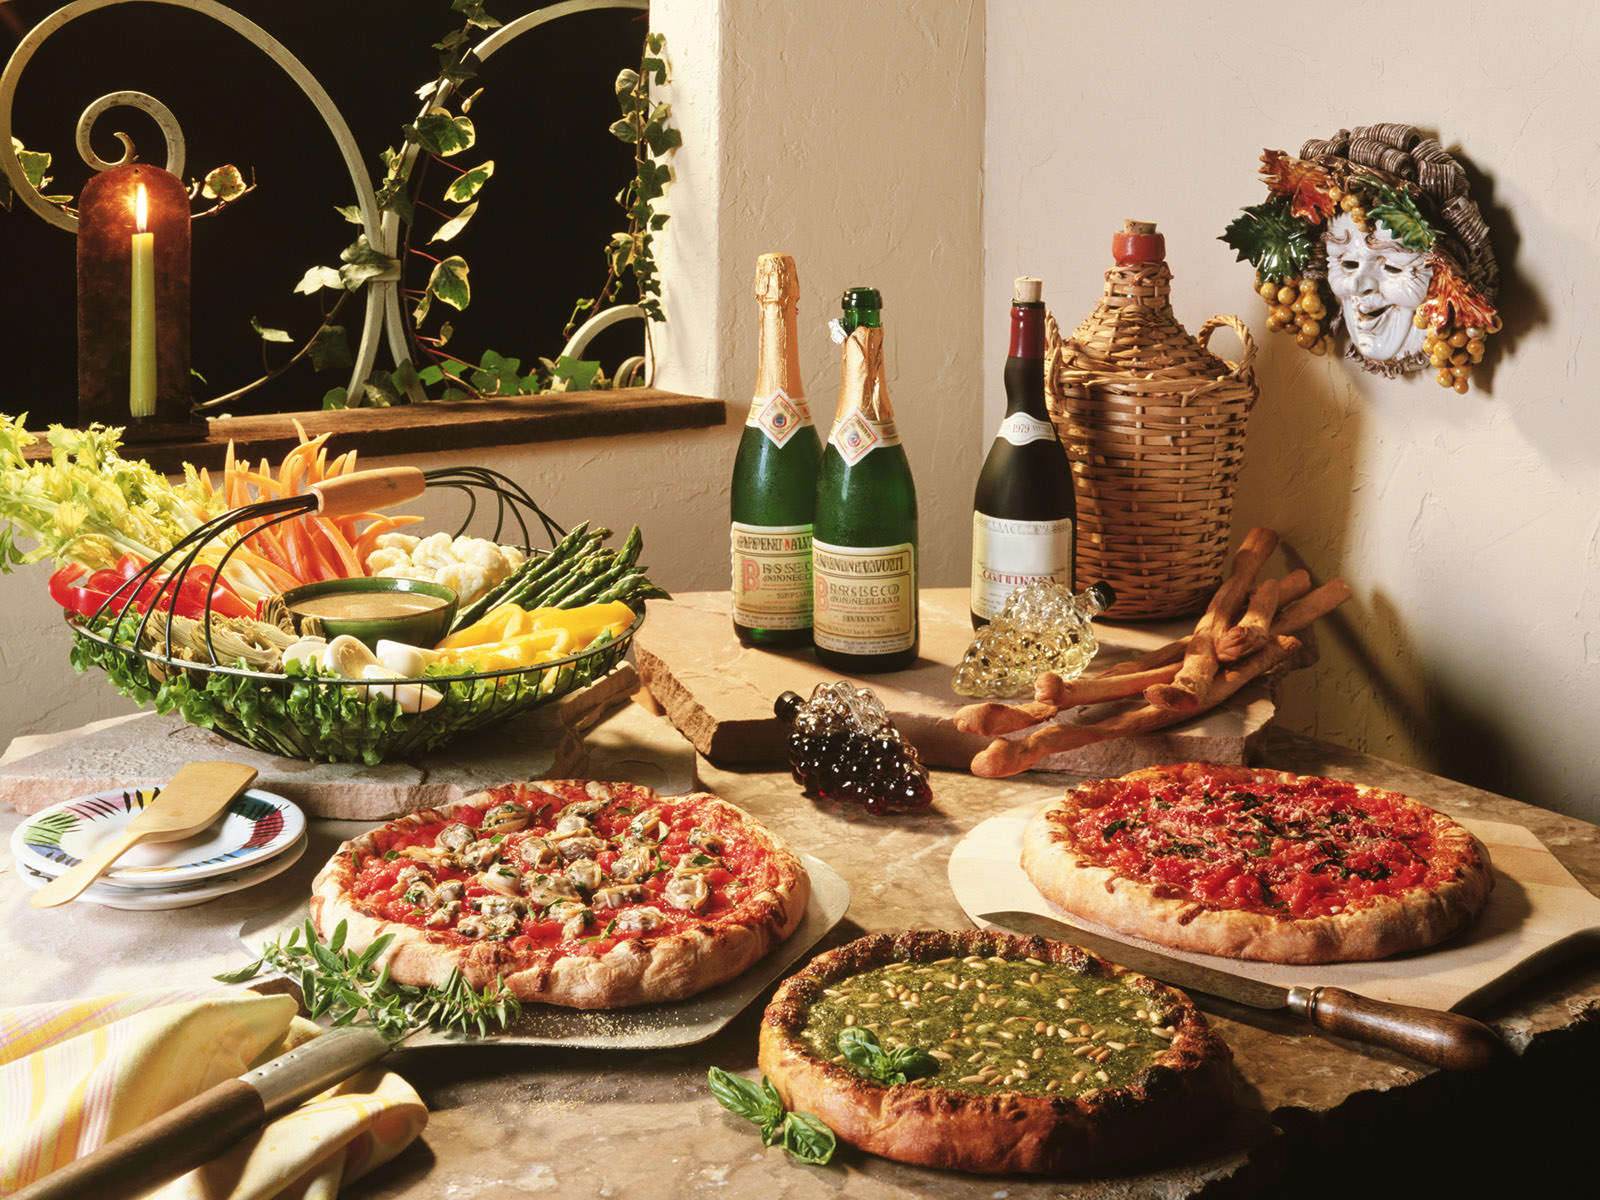 italian wine meal with pizza